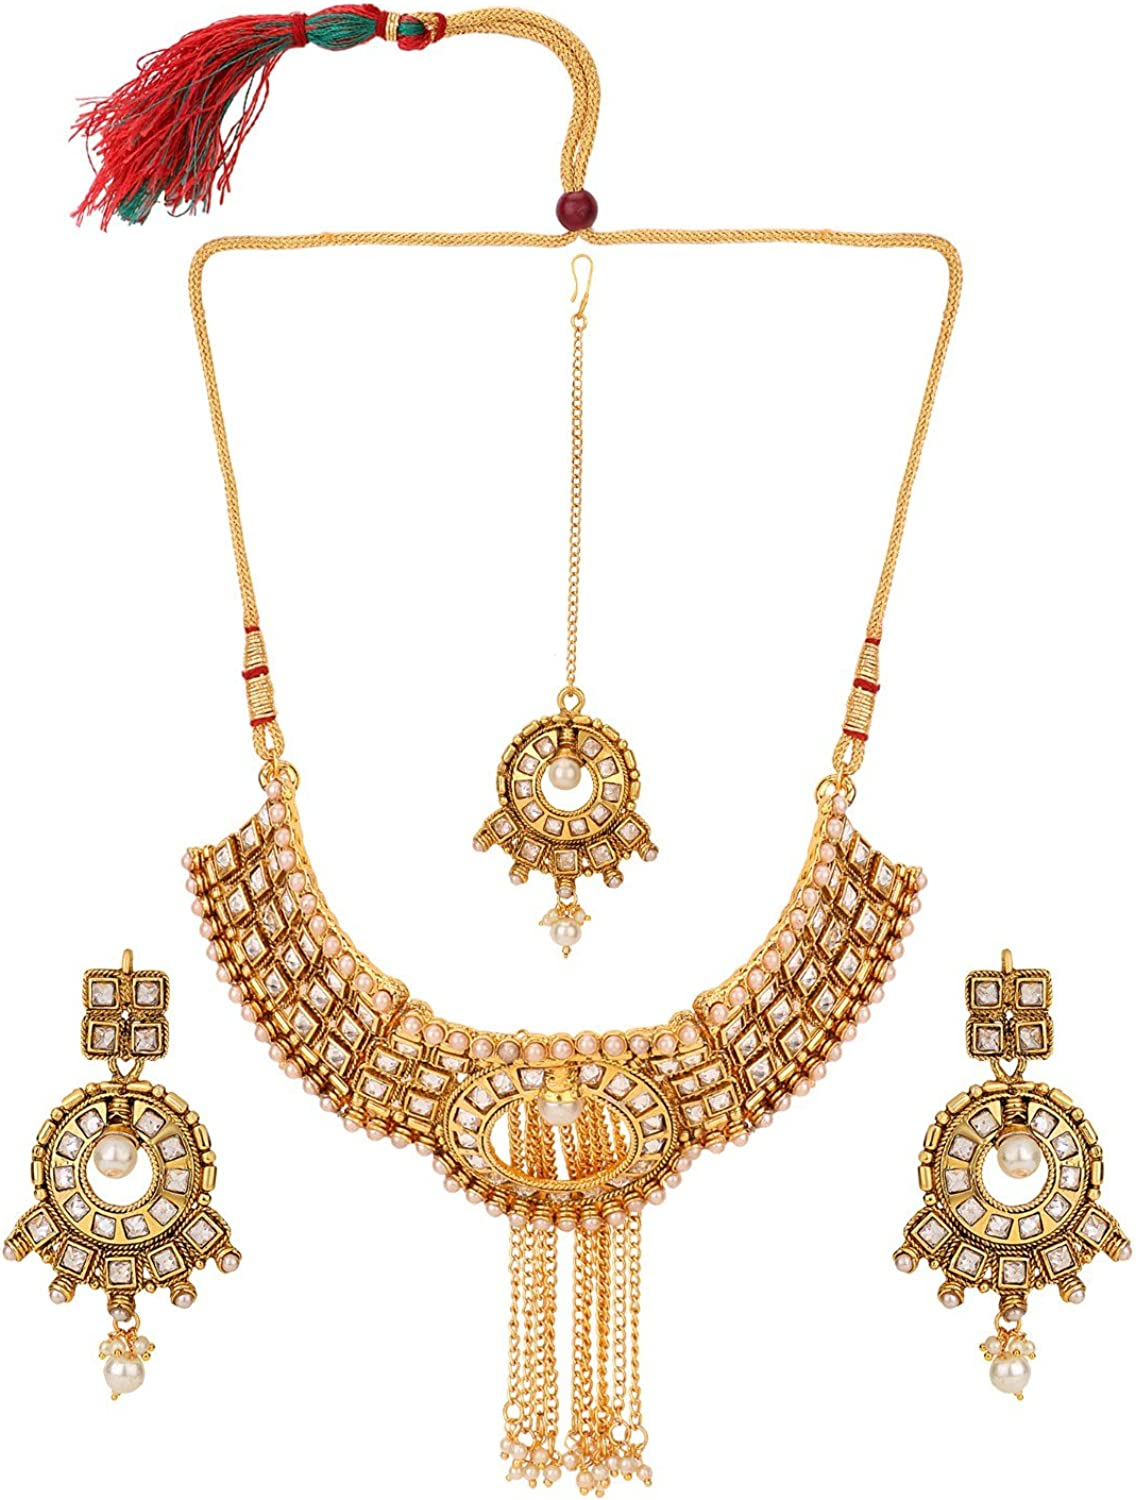 Efulgenz Indian Ethnic Bollywood Traditional White Rhinestone Heavy Bridal Designer Jewelry Choker Necklace and Earrings Jewelry Set in Antique 18K Gold Tone for Women and Girls